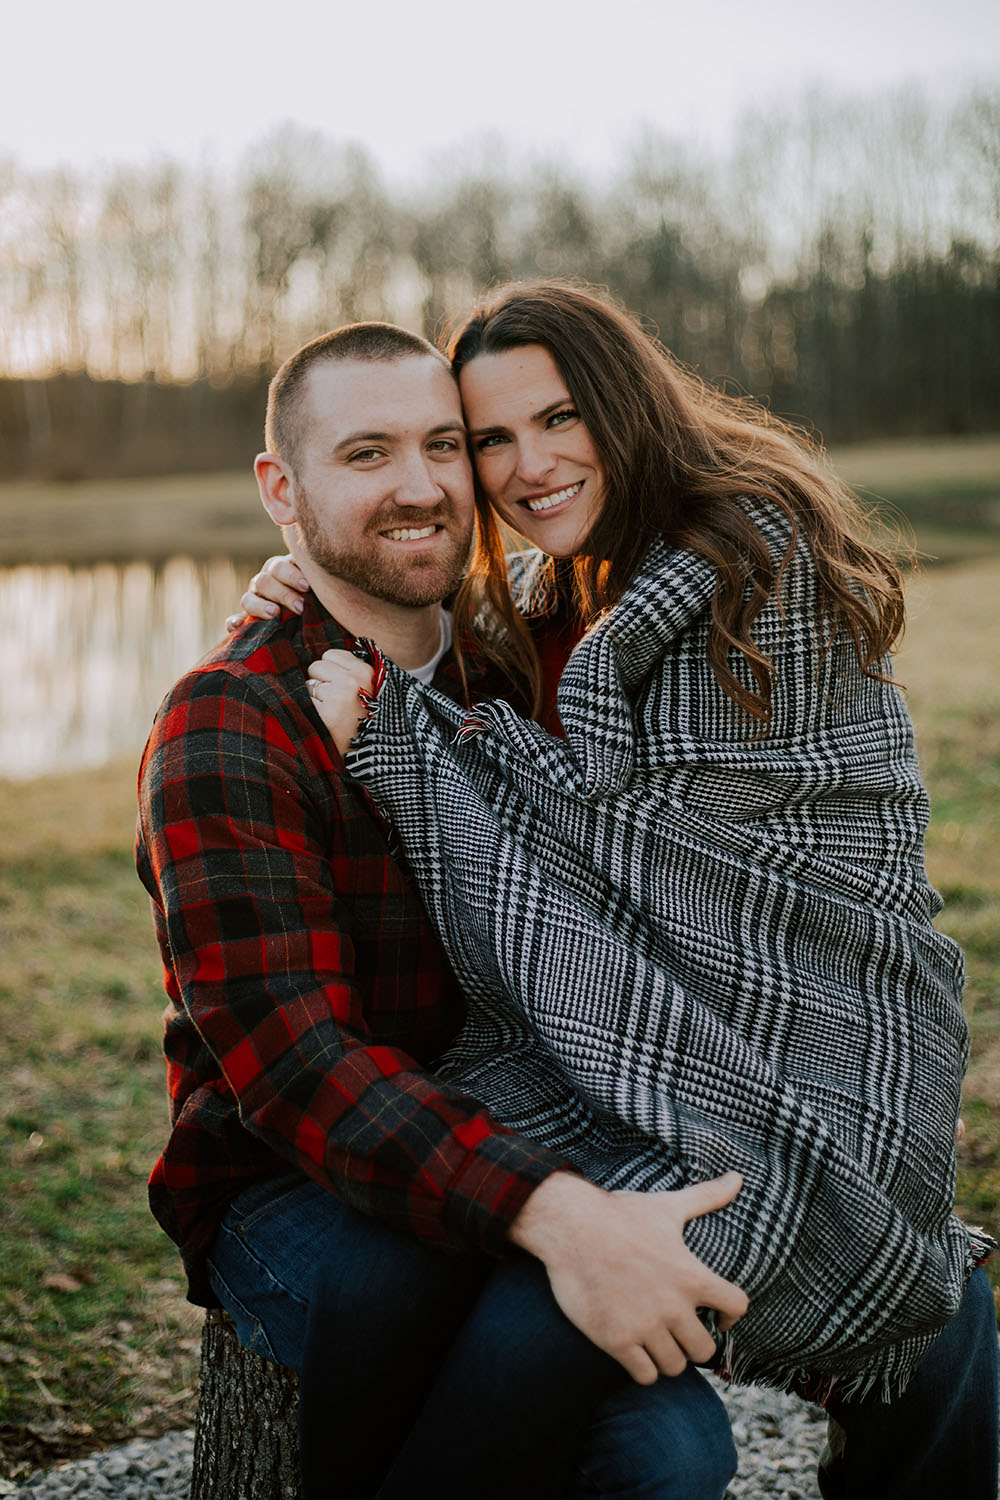 Shutter Up Studios | Wedding photographer in Crawfordsville Indiana | Golden hour engagement session with flannel and blanket